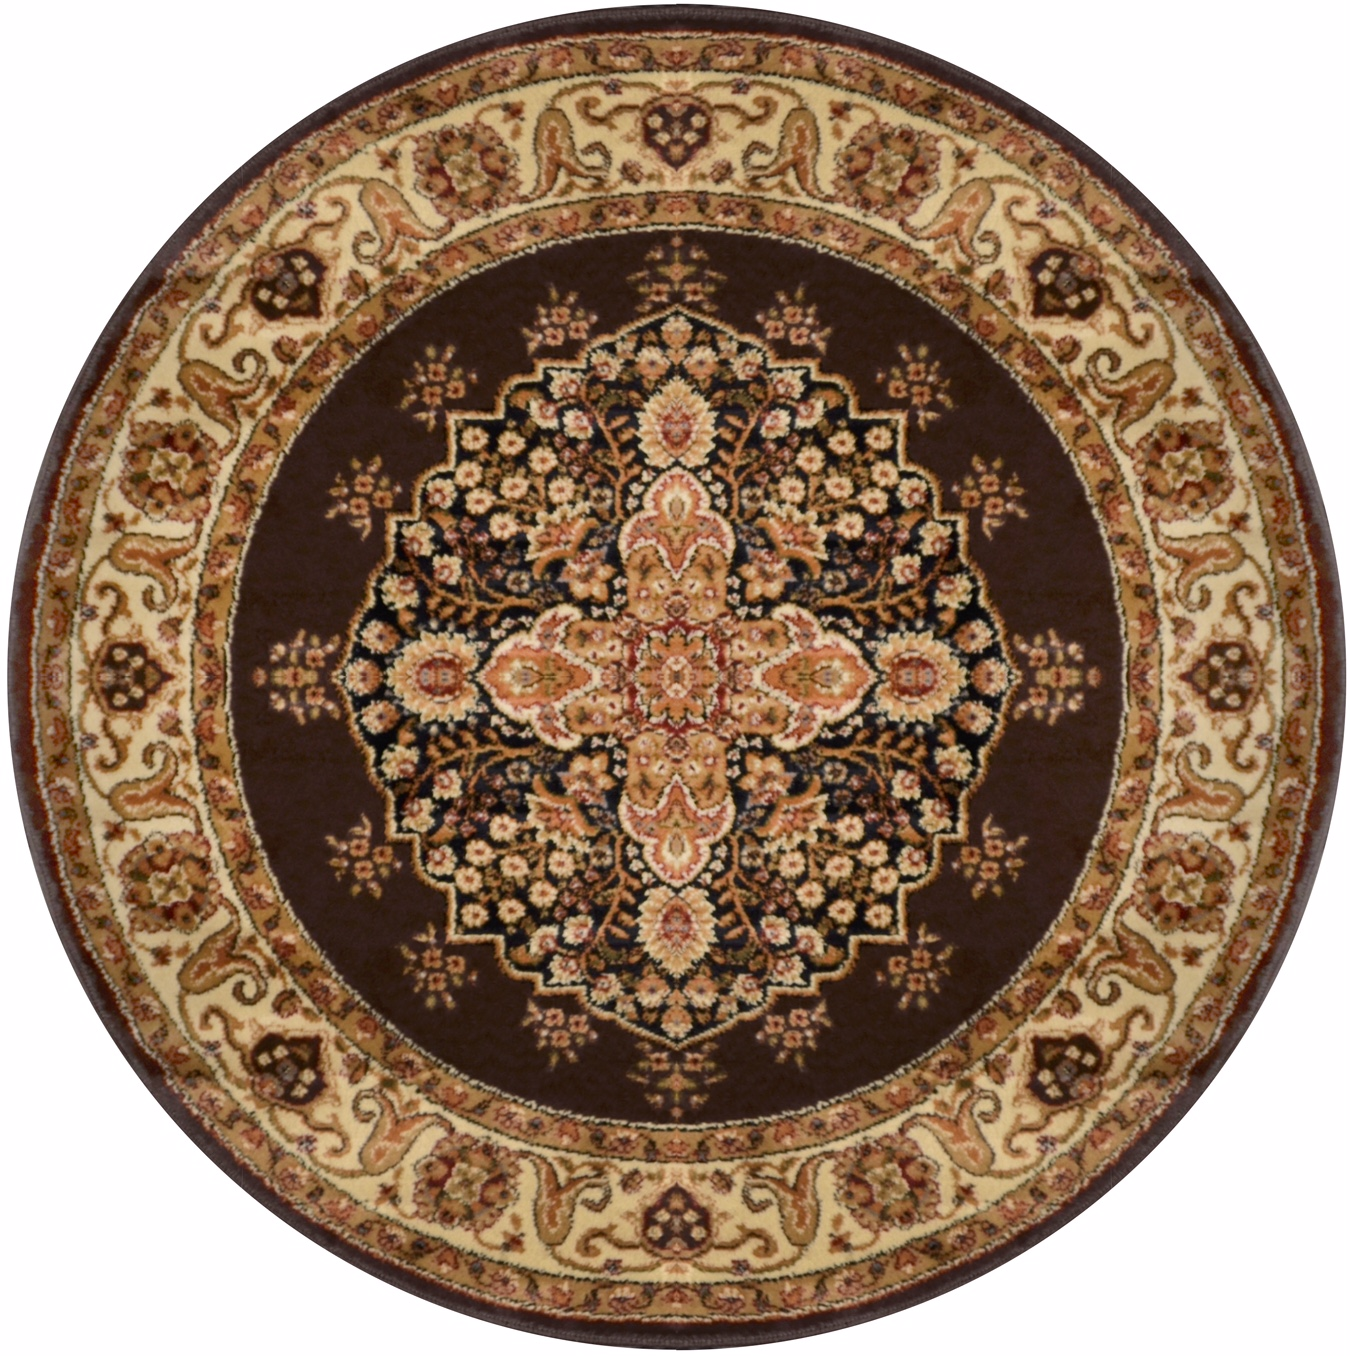 Brown Medallion Oriental Area Rug 5x5 Round Persian Border